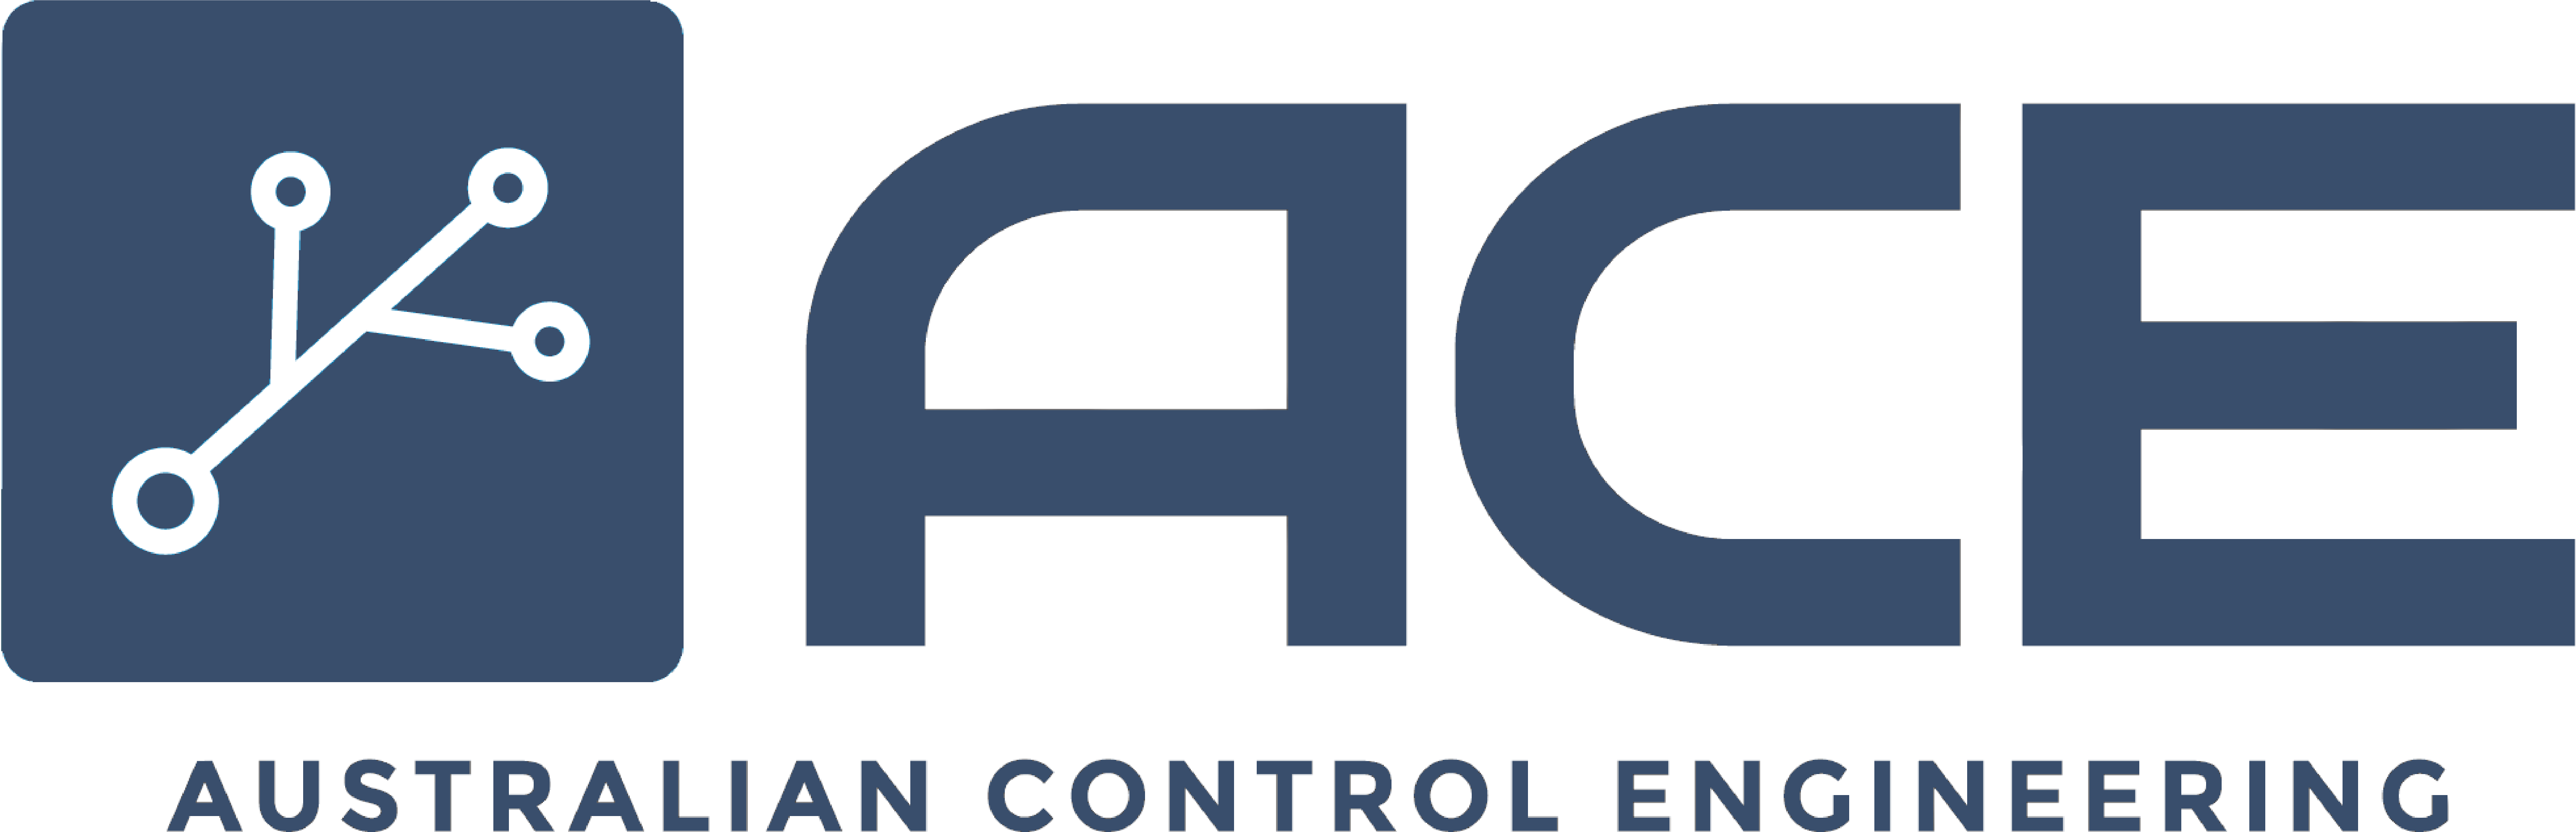 Australian Control Engineering (ACE) on a Rapid Rise to IIoT (Industrial Internet of Things) Market Leadership